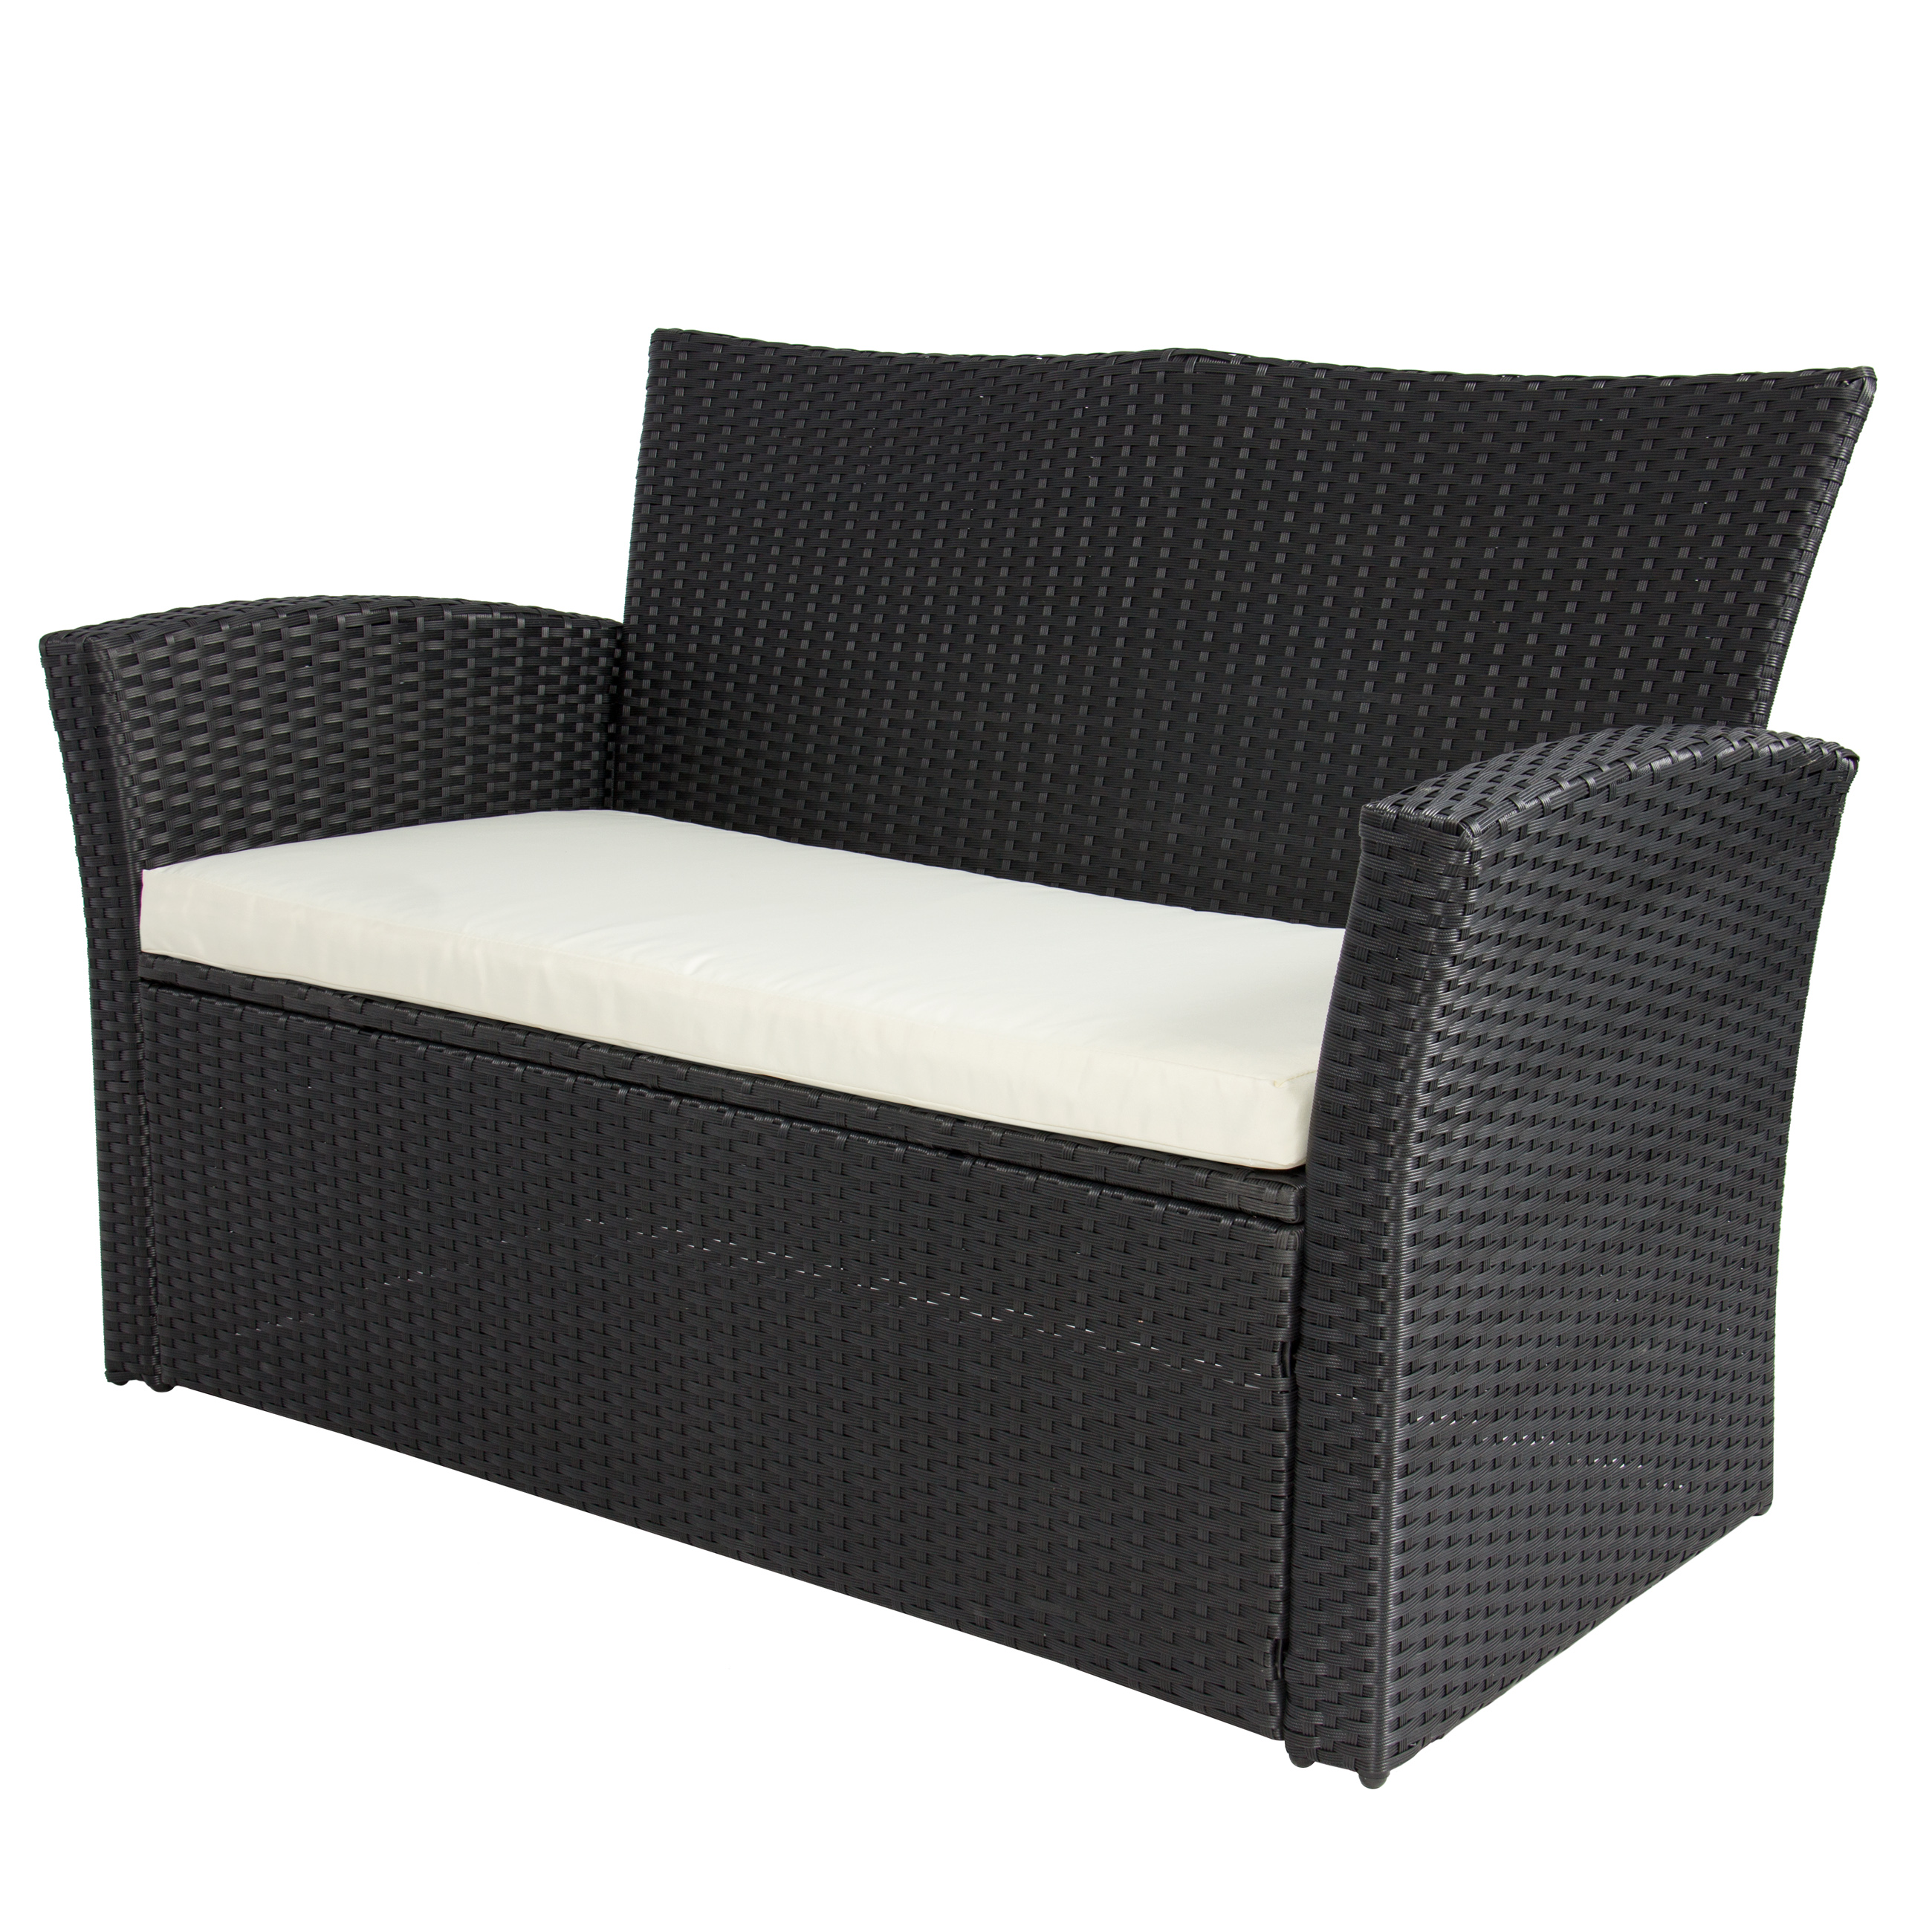 Merveilleux 4pc Outdoor Patio Garden Furniture Wicker Rattan Sofa Set Black    Walmart.com